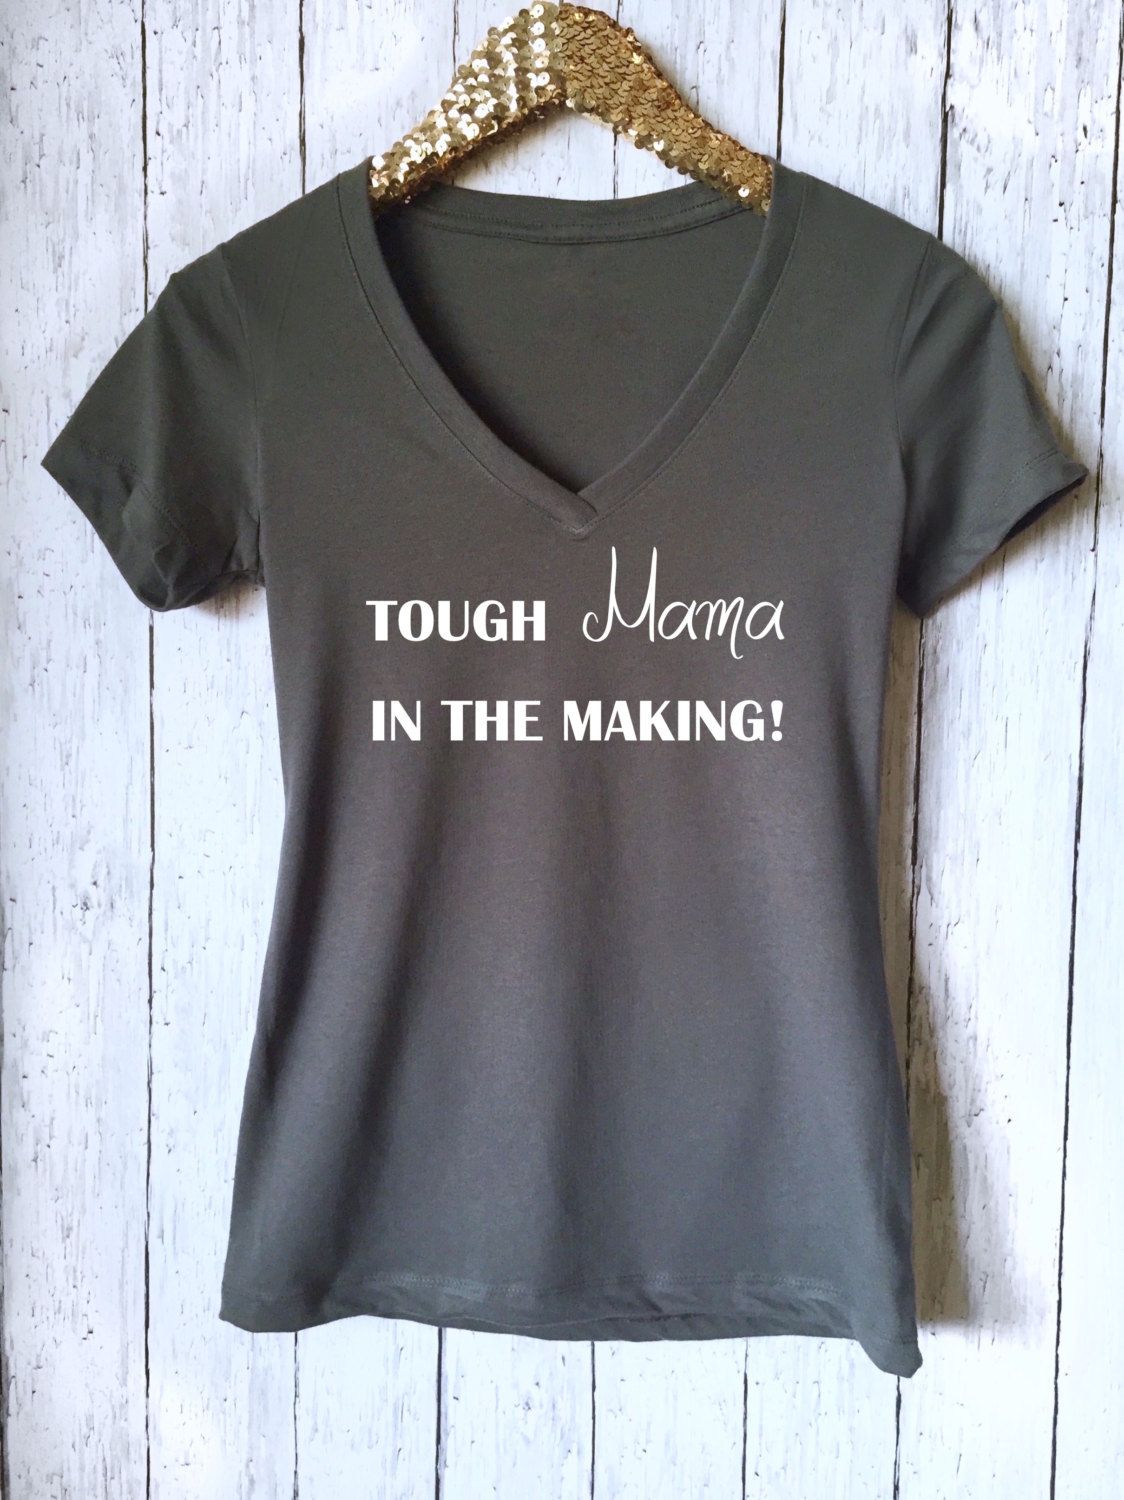 918fda8ded9185 Tough Mama in The Making Shirt